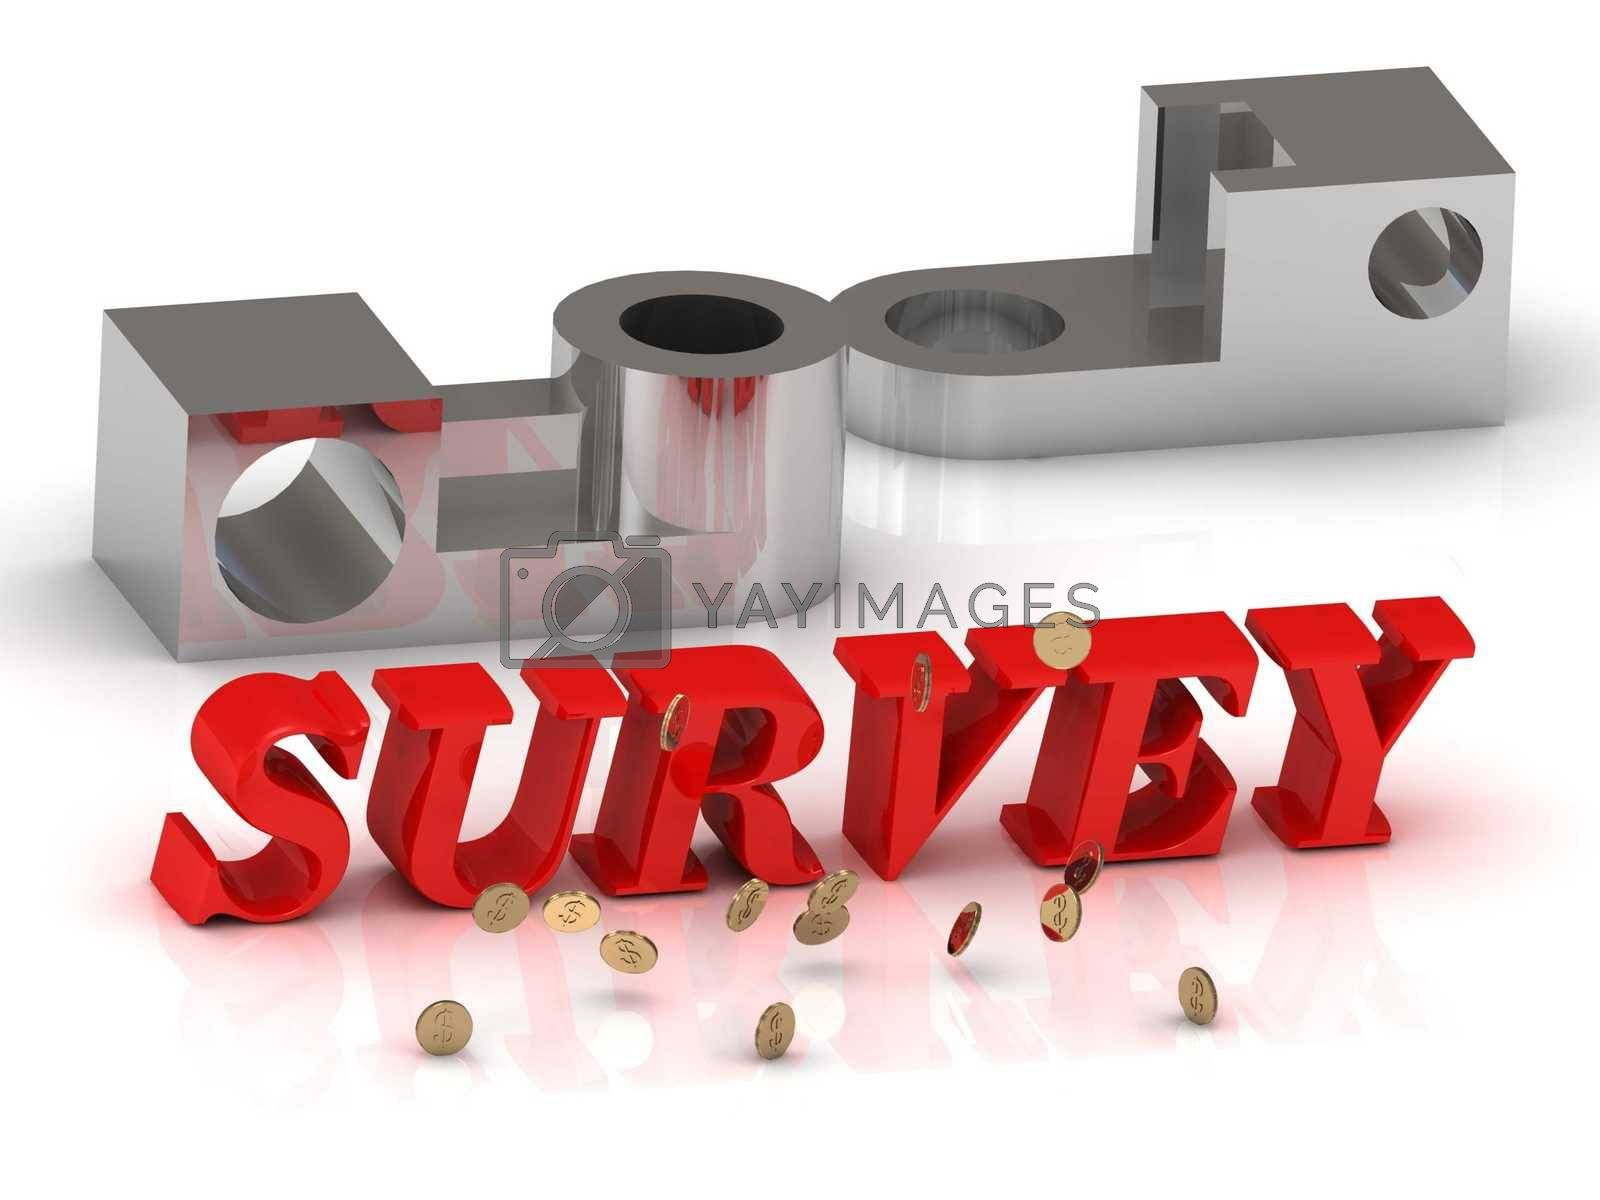 SURVEY- inscription of red letters and silver details on white background